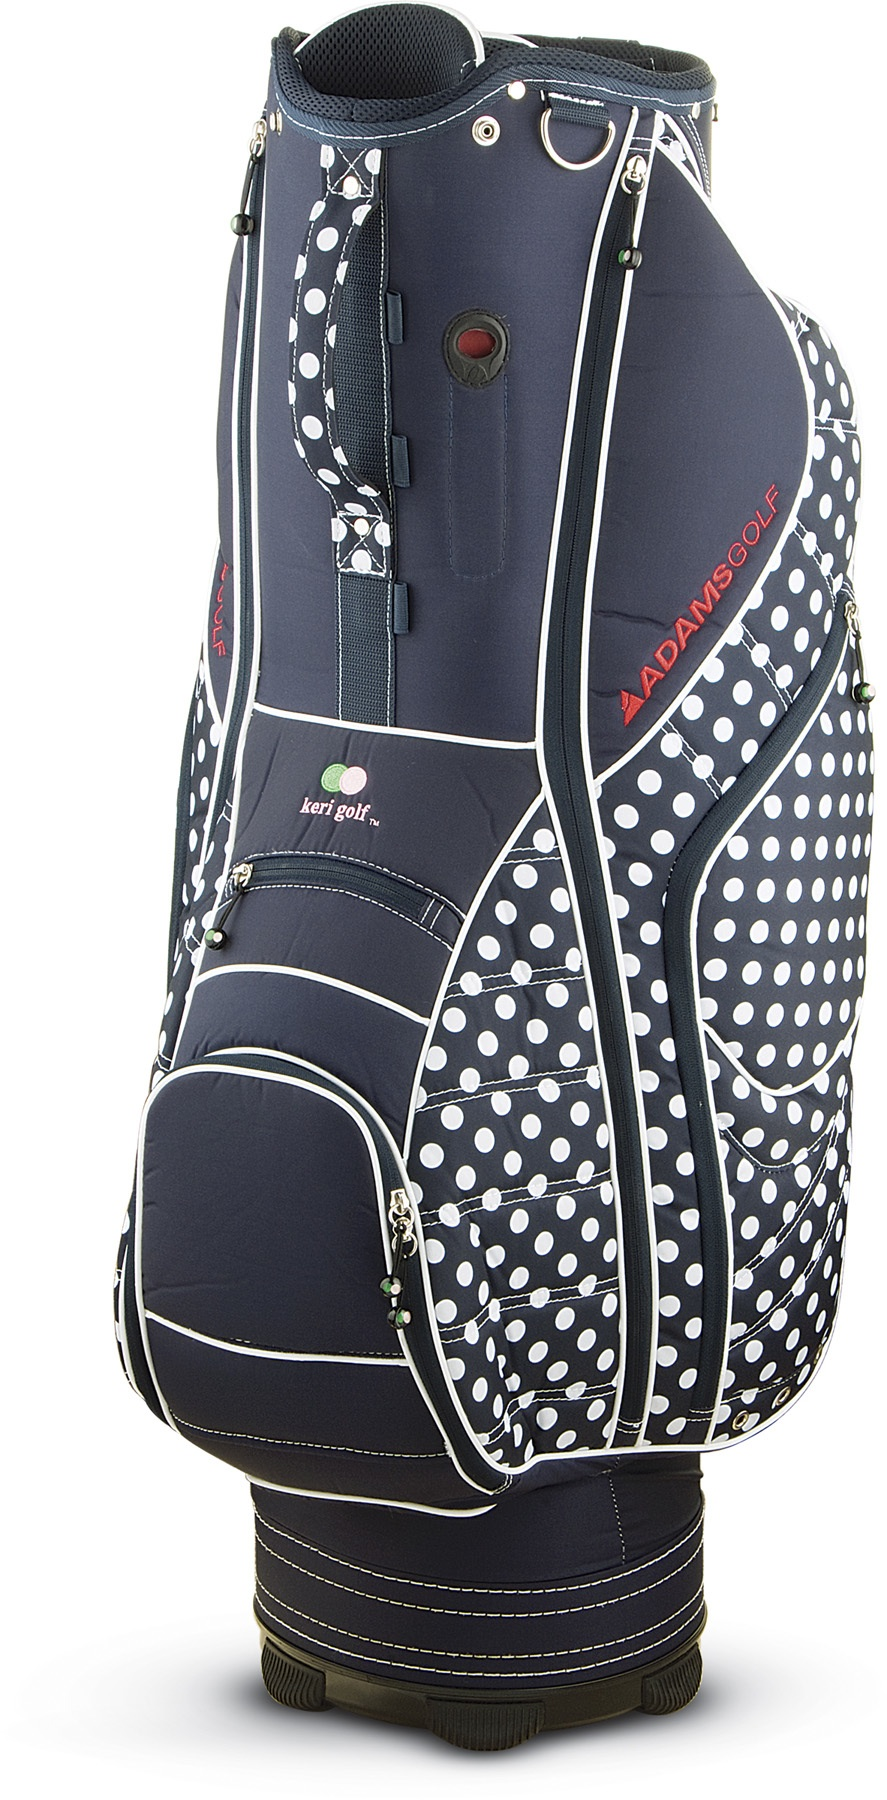 Keri sport royal blues cart bag.